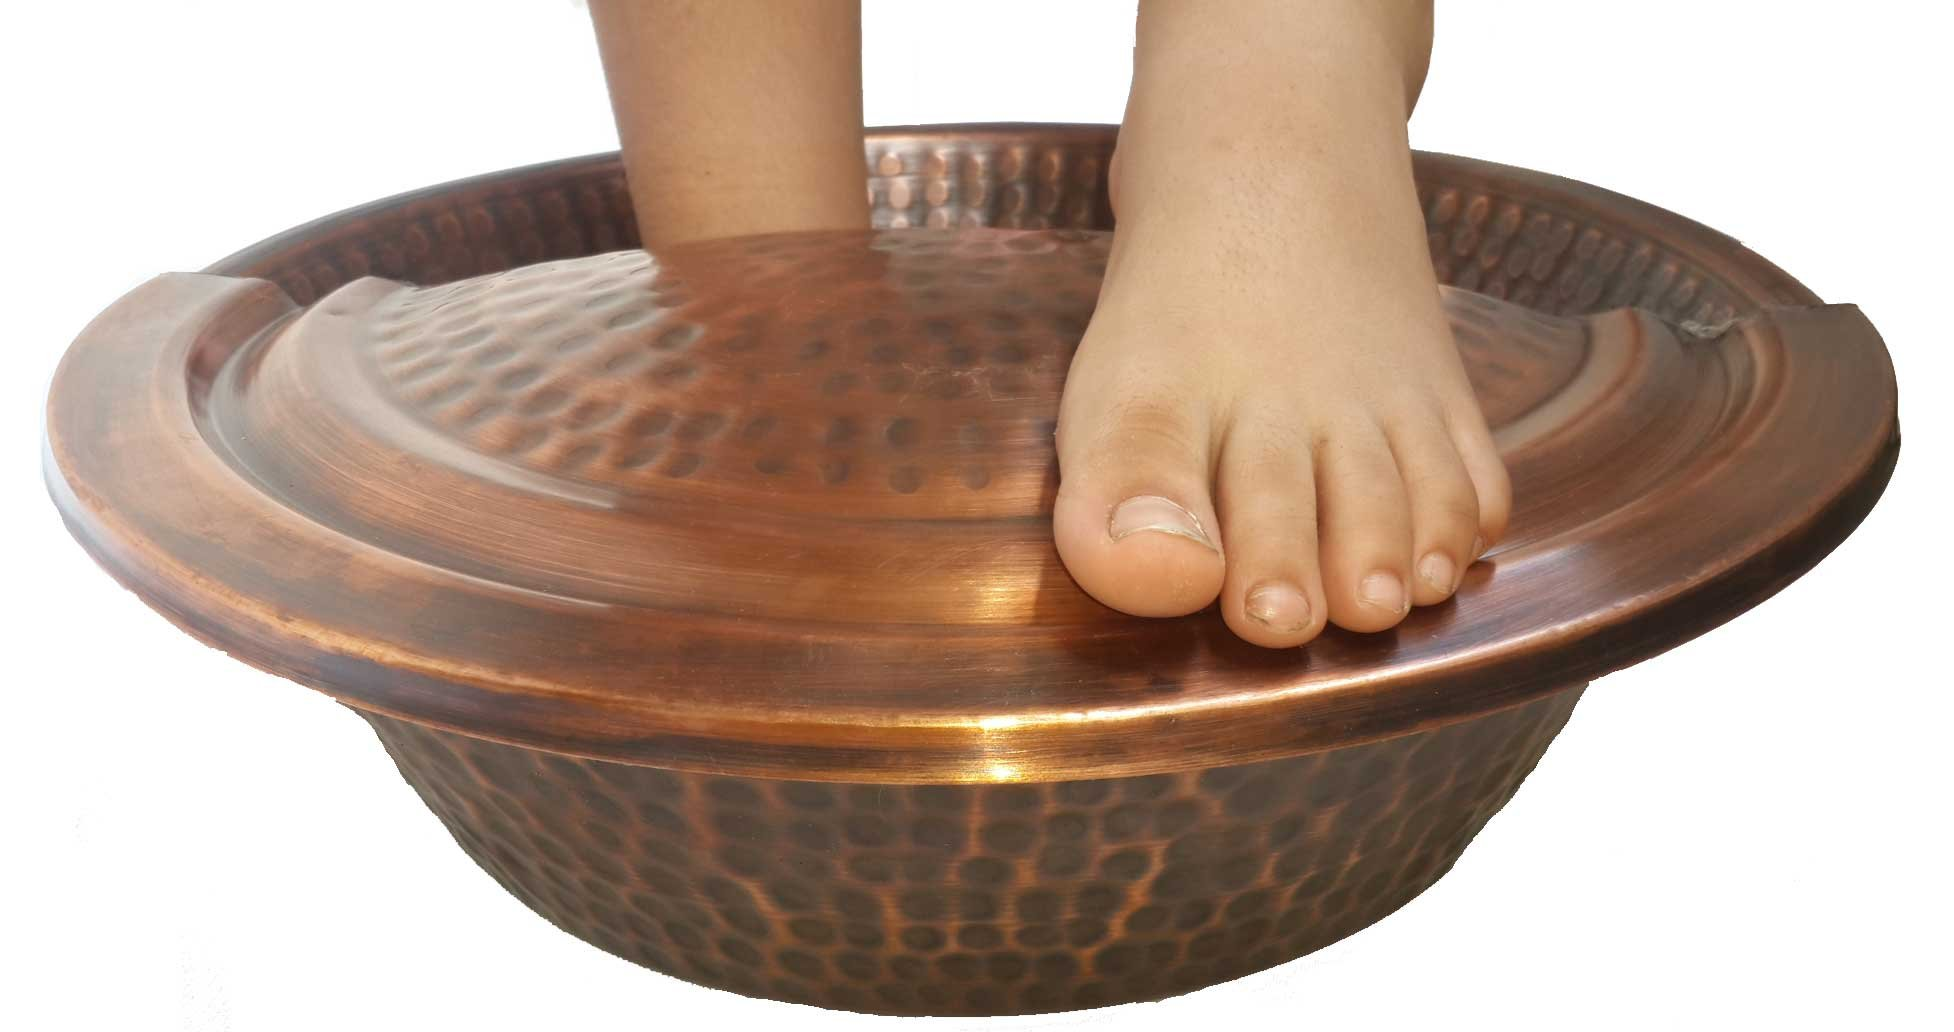 Antique Finish Pedicure Spa Foot Bath Soak Massage Therapy Copper Bowl + Rest